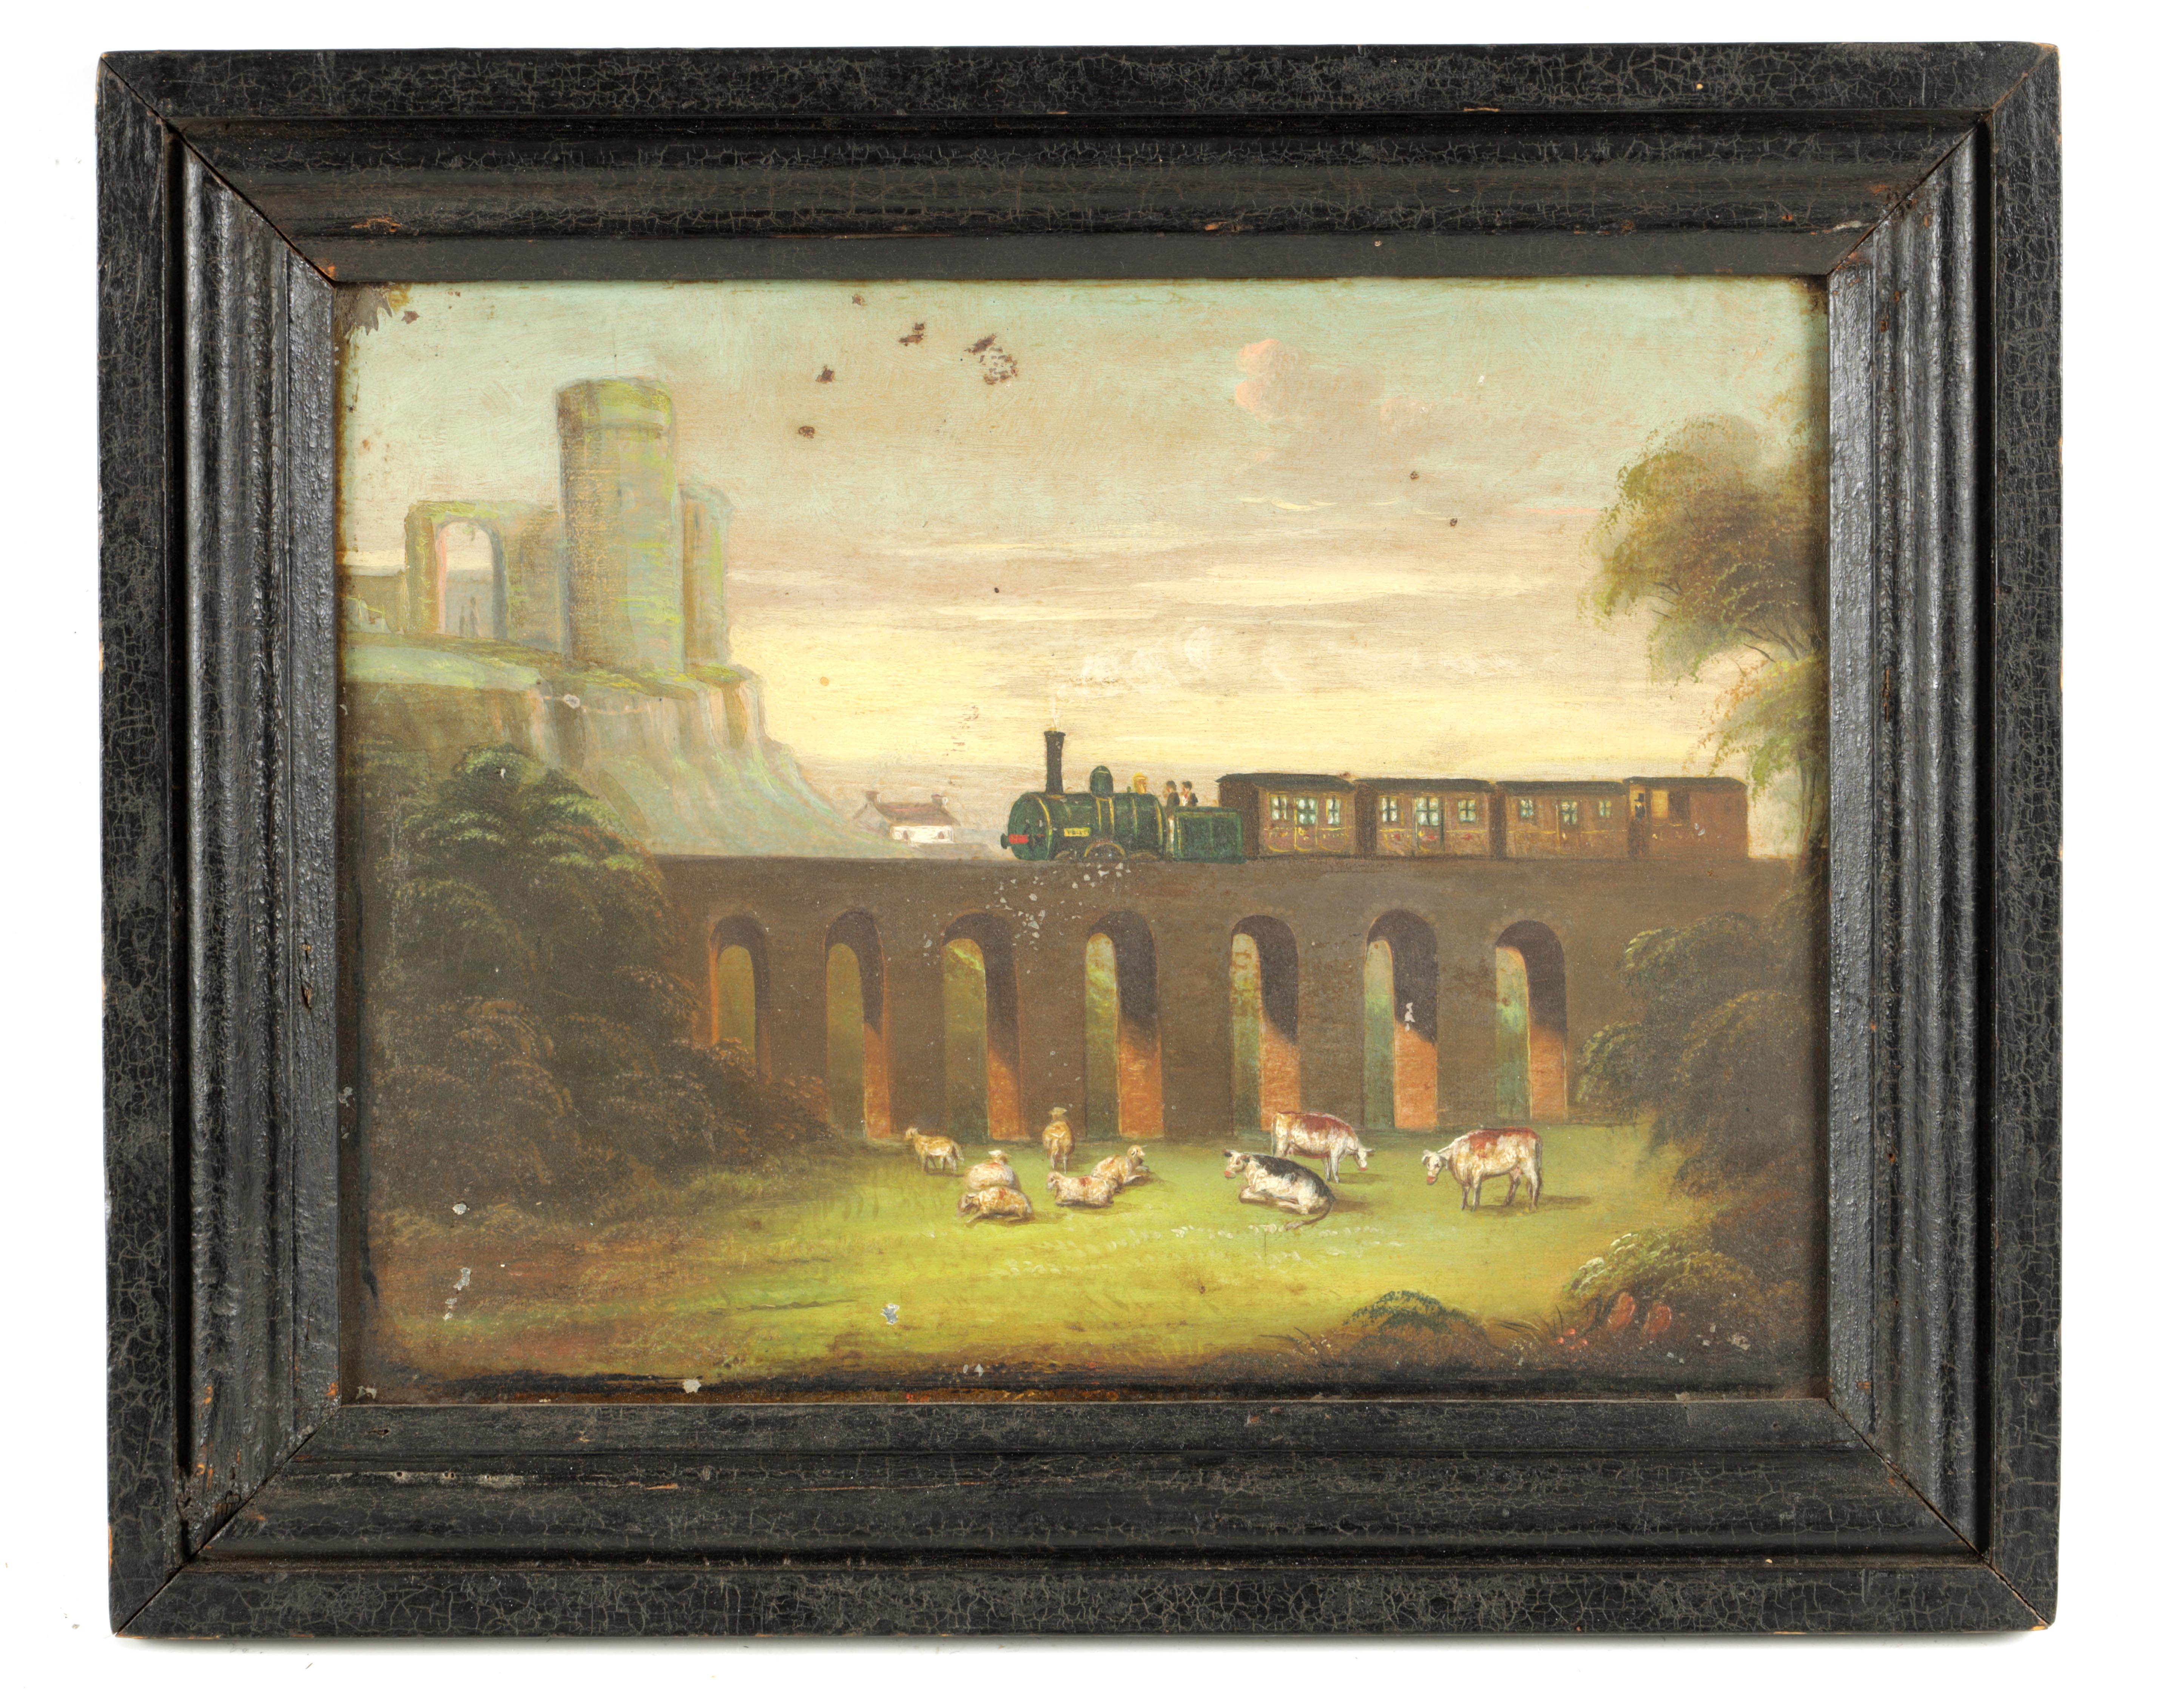 A 19TH CENTURY NIAEVELY PAINTED OILON TIN depicting a steam train on a viaduct with cattle in the